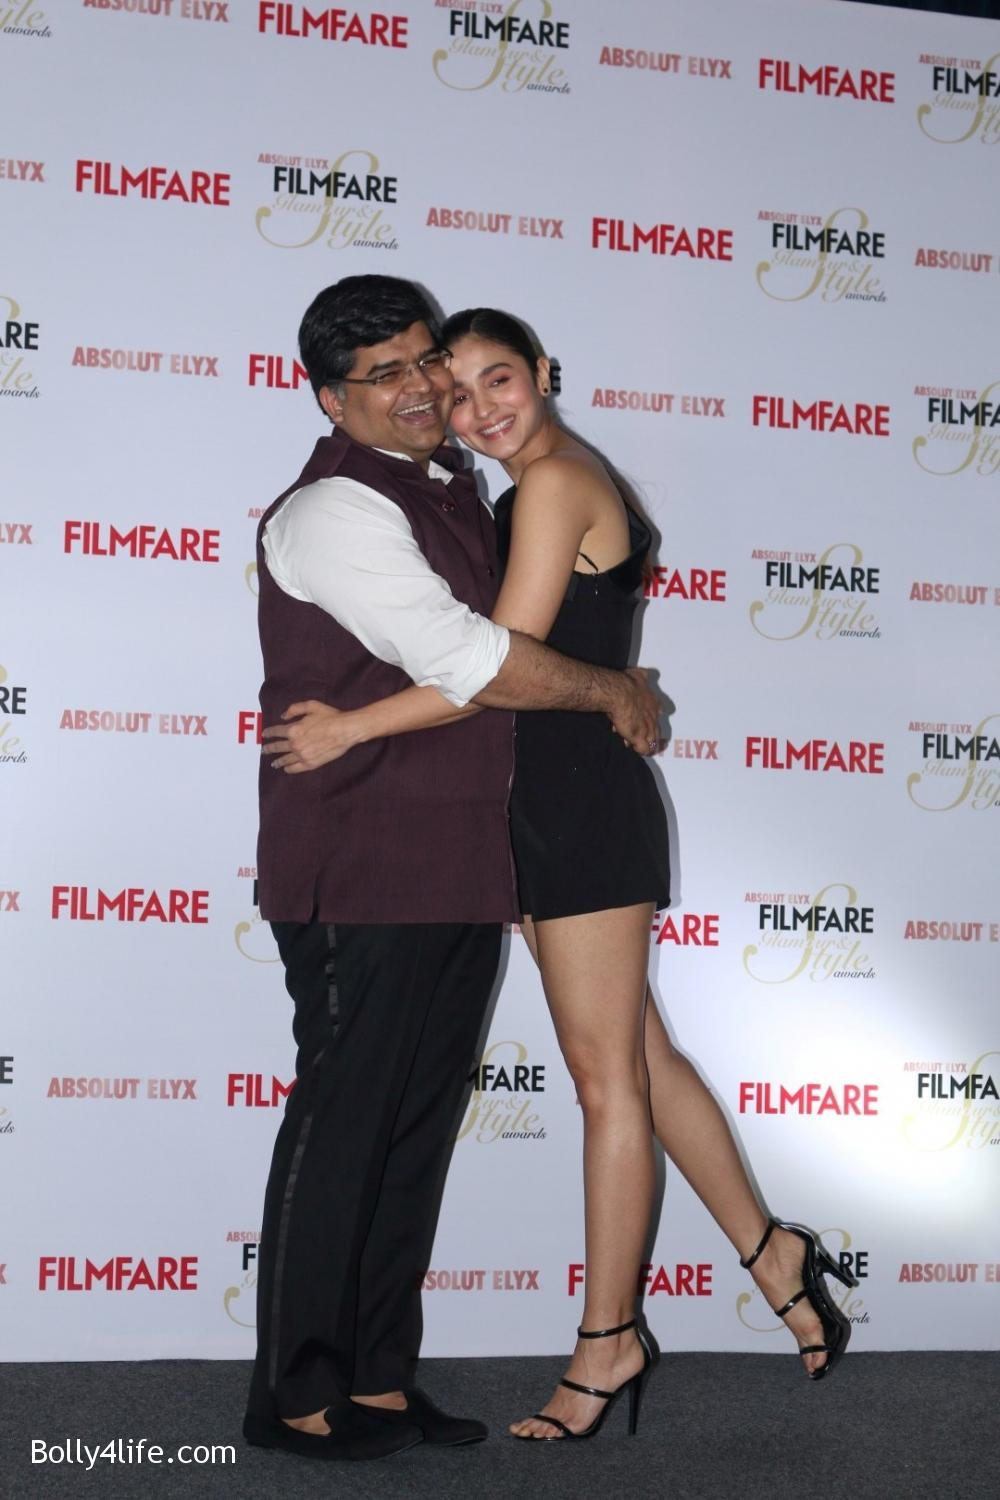 Alia-Bhatt-during-the-Absolut-Elyx-Filmfare-Glamour-and-Style-Awards-cover-launch-21.jpg